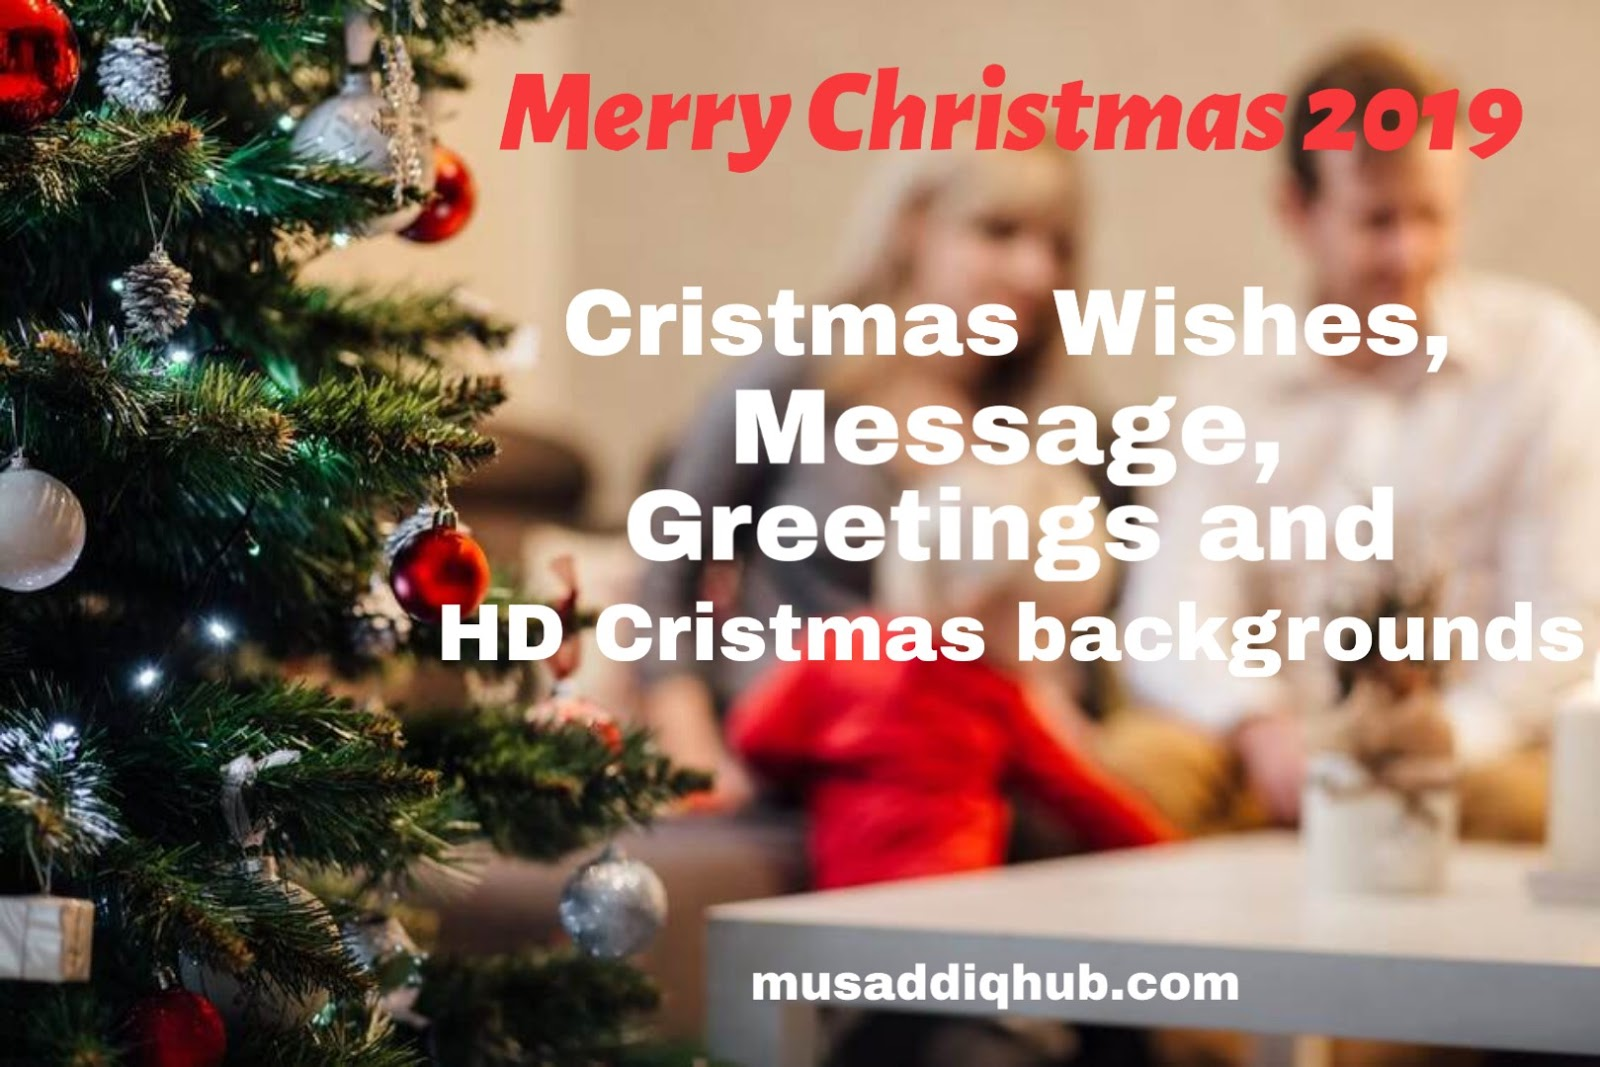 Happy Merry Christmas 2019 Whatsapp Message Sms Wishes Hd Cristmas Backgrounds And Merry Christmas Greetings Whatsapp